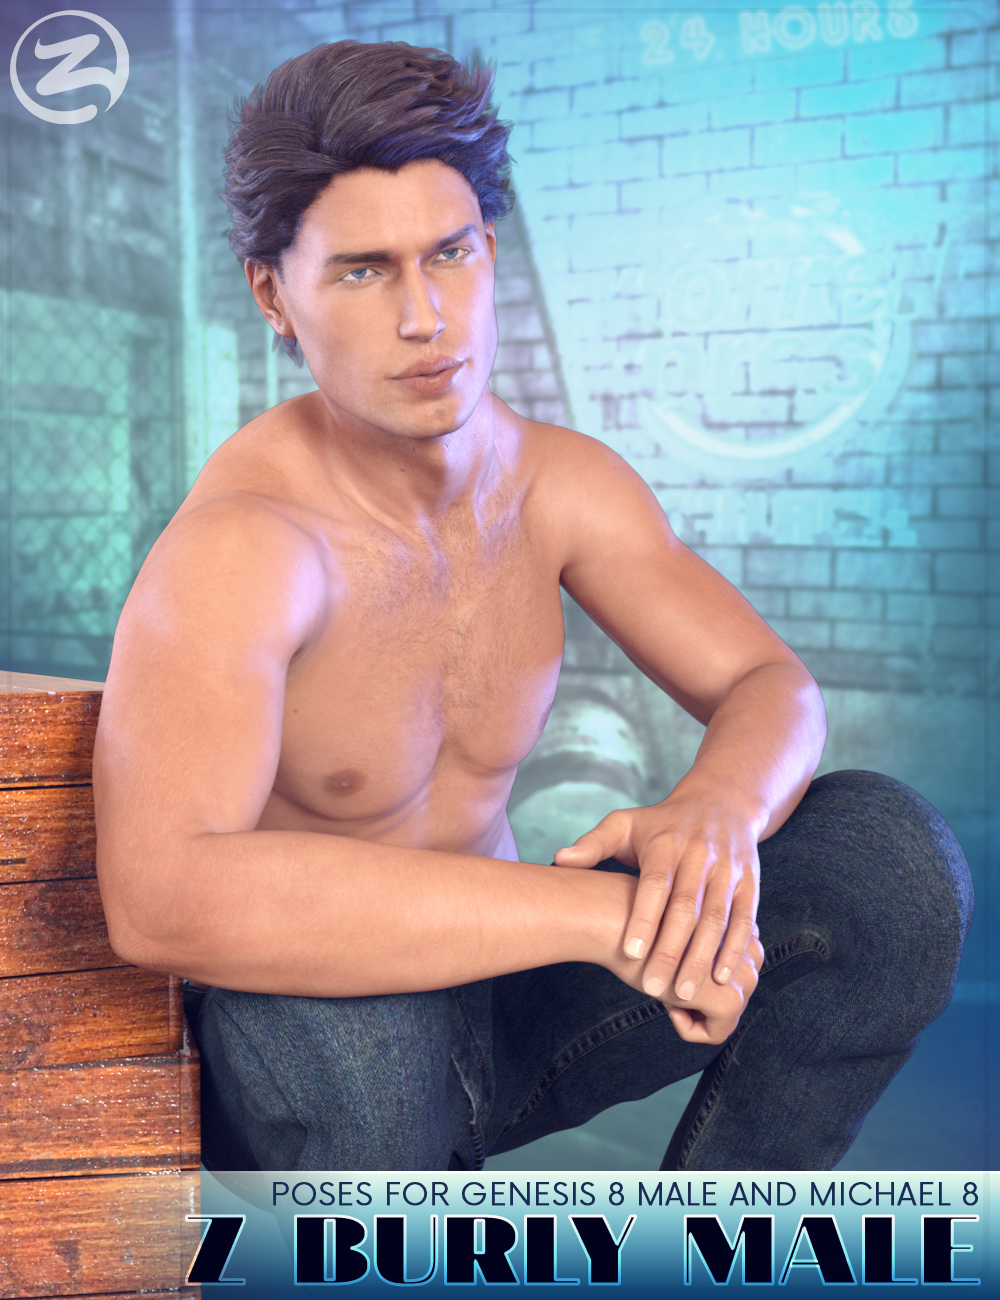 Z Burly Male - Poses for Genesis 8 Male and Michael 8 by: Zeddicuss, 3D Models by Daz 3D